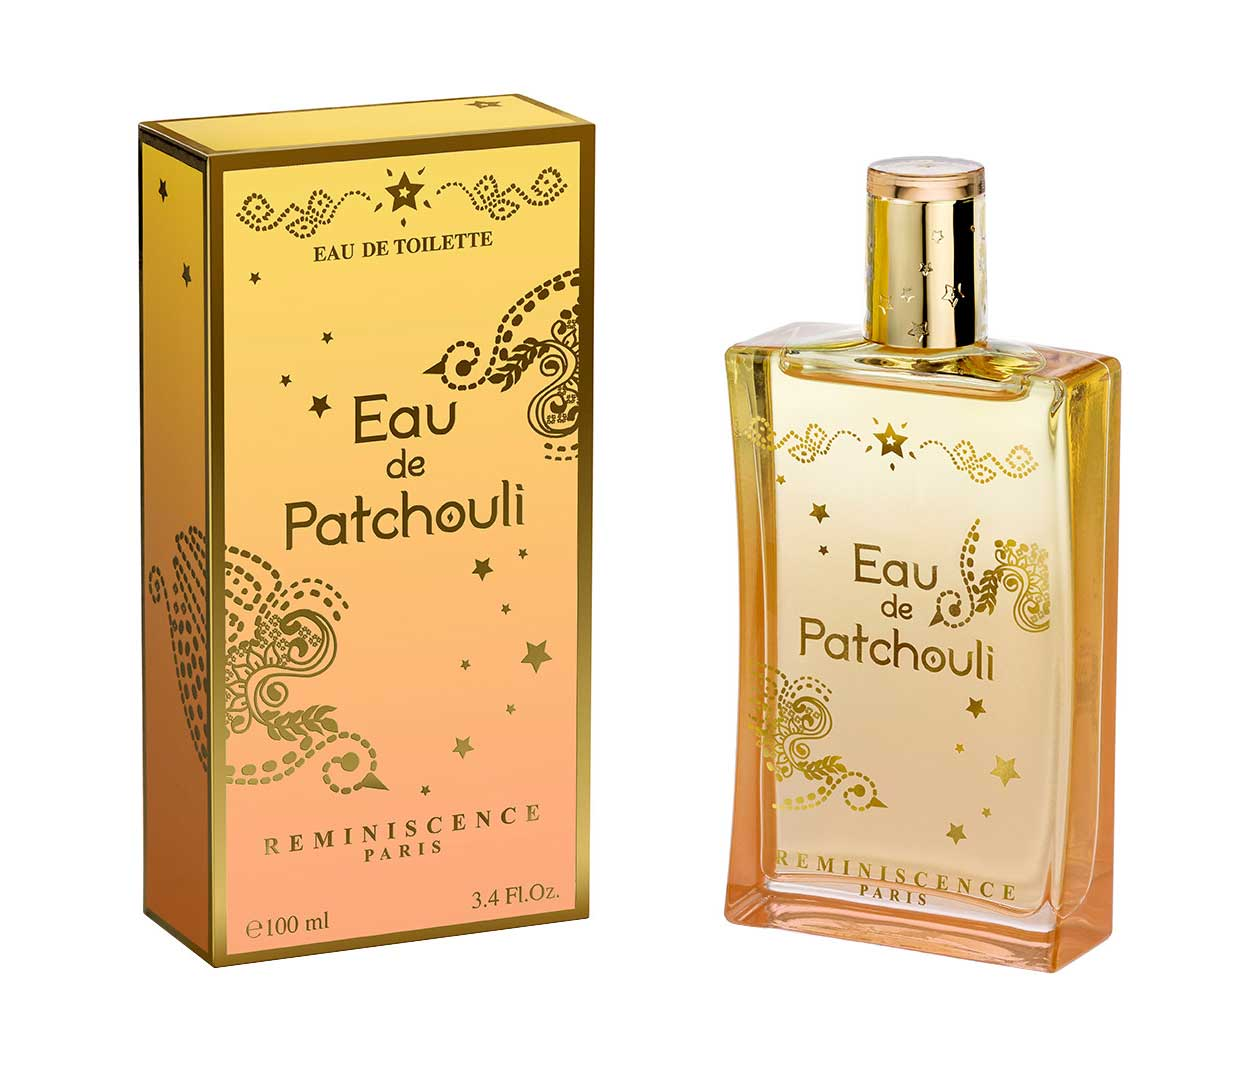 parfum patchouli reminiscence